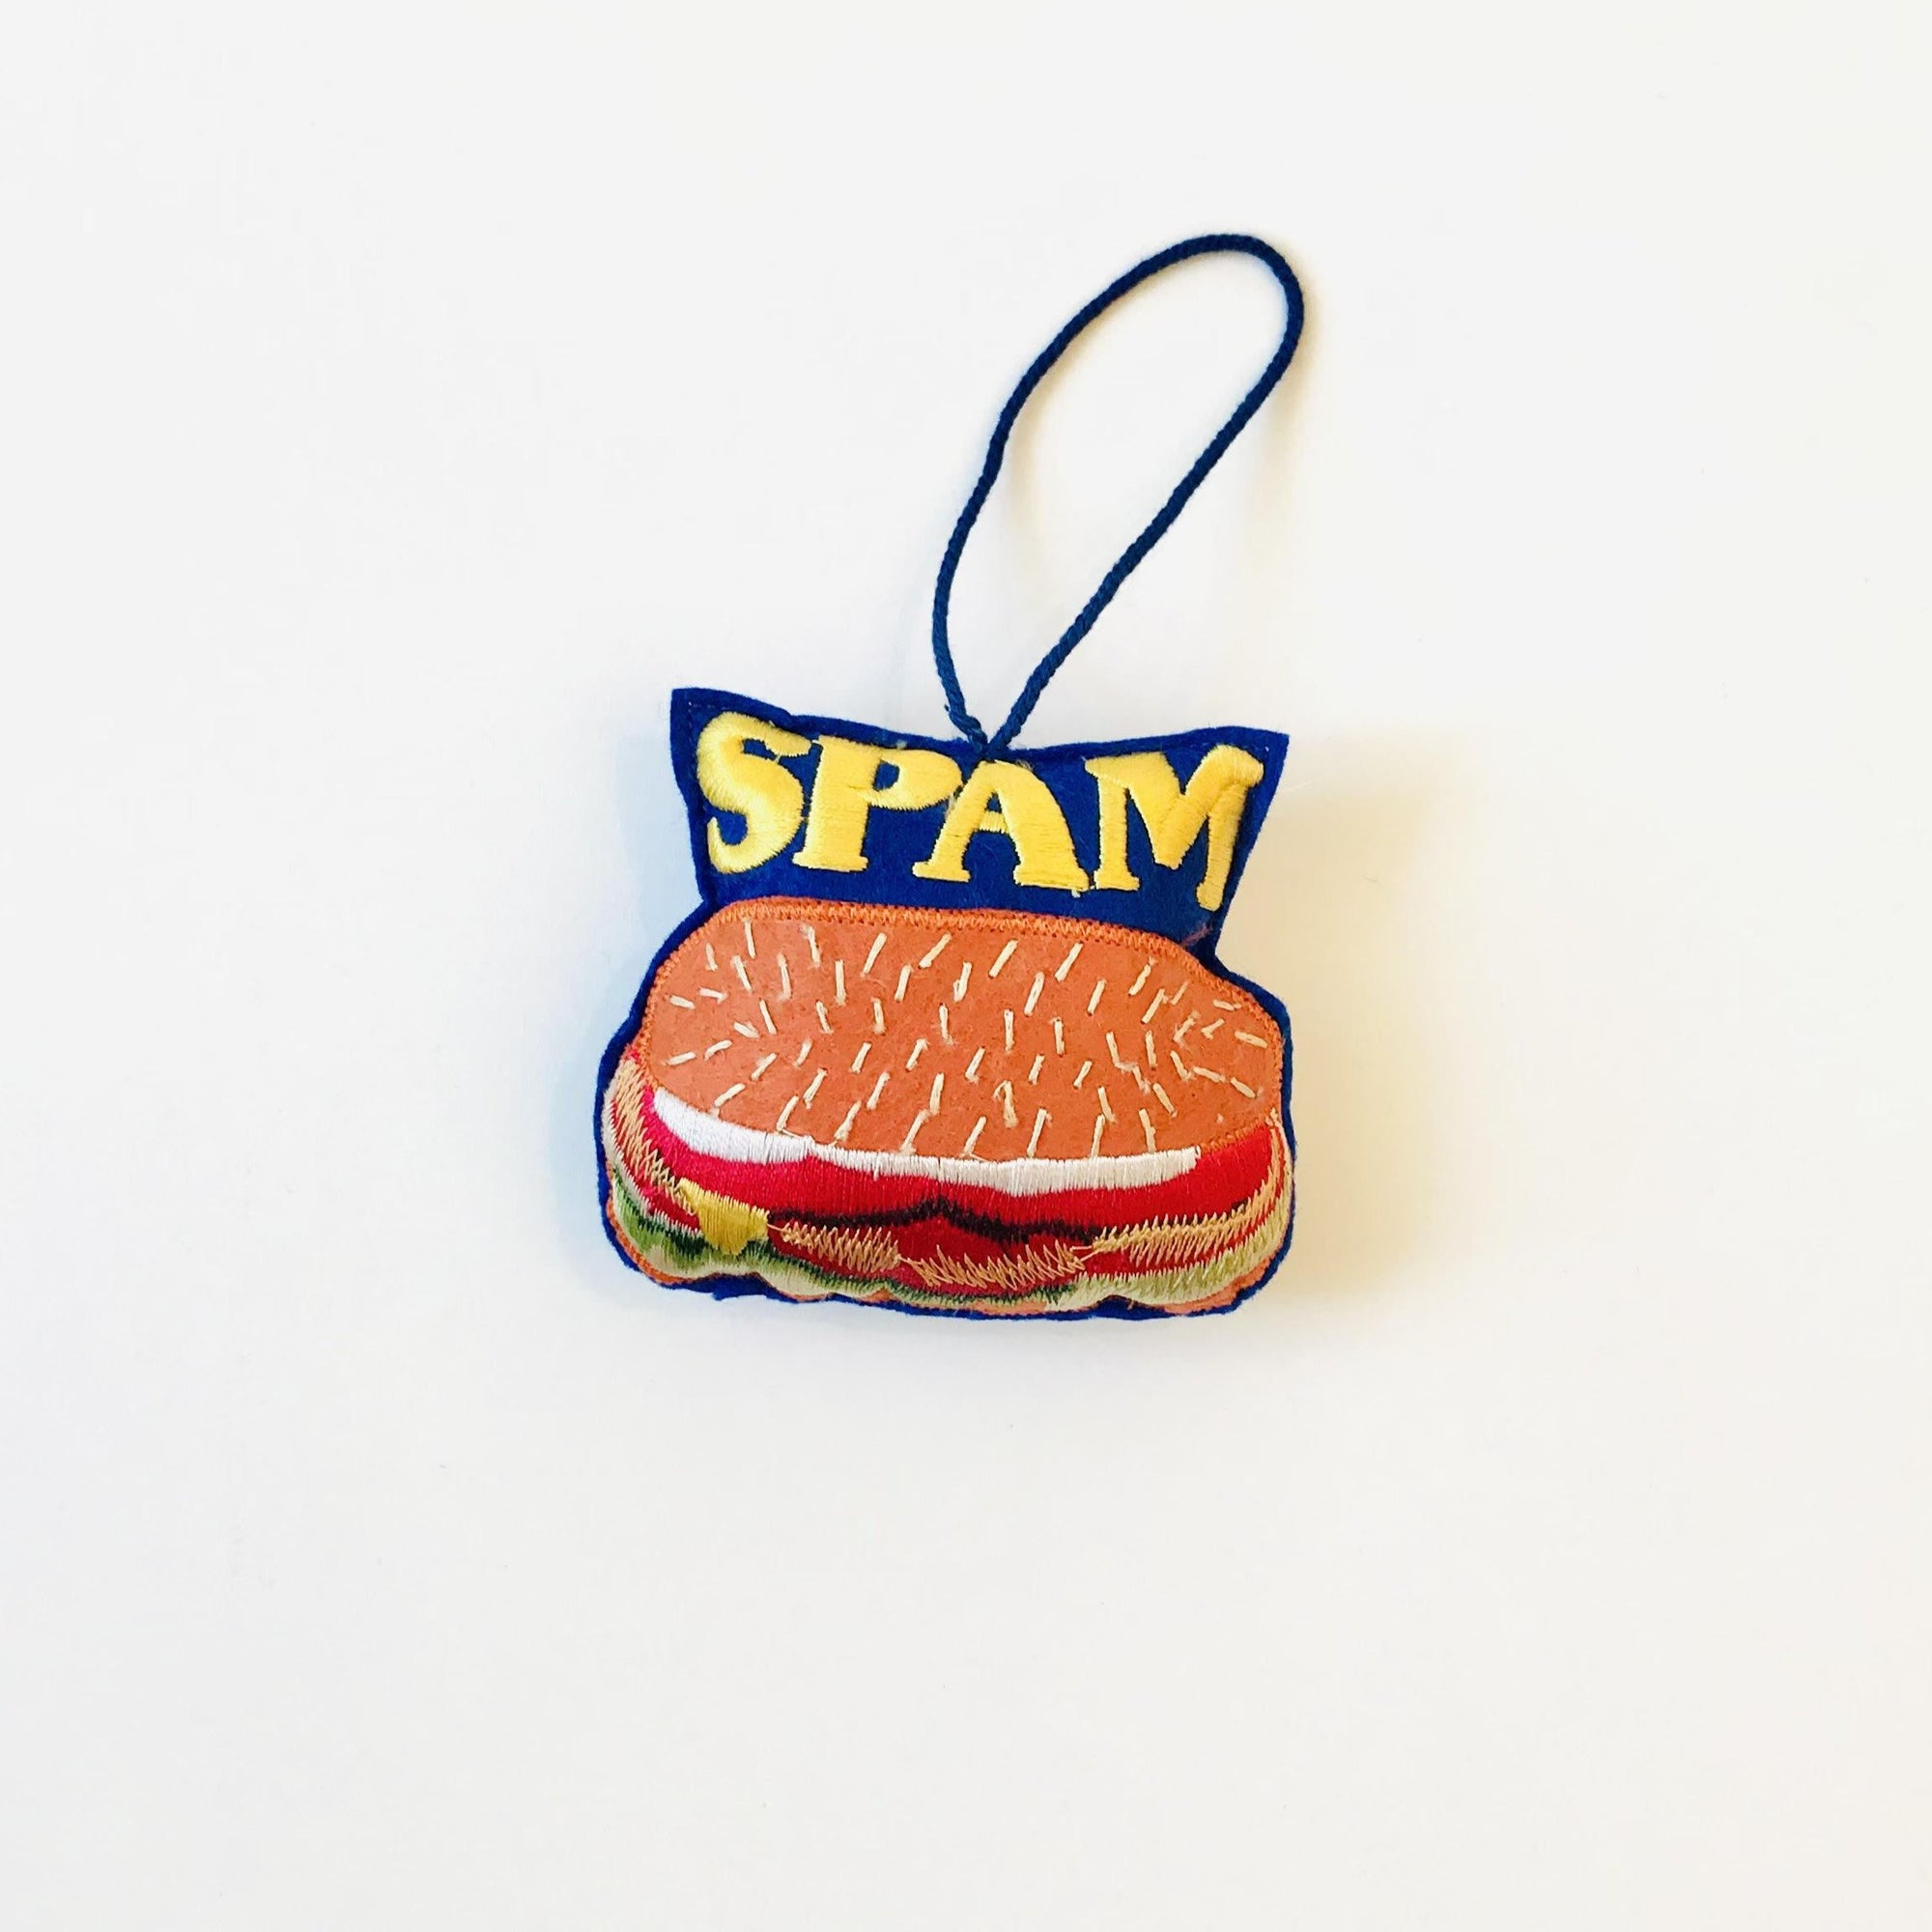 Cody Foster: Felted Spam Ornament